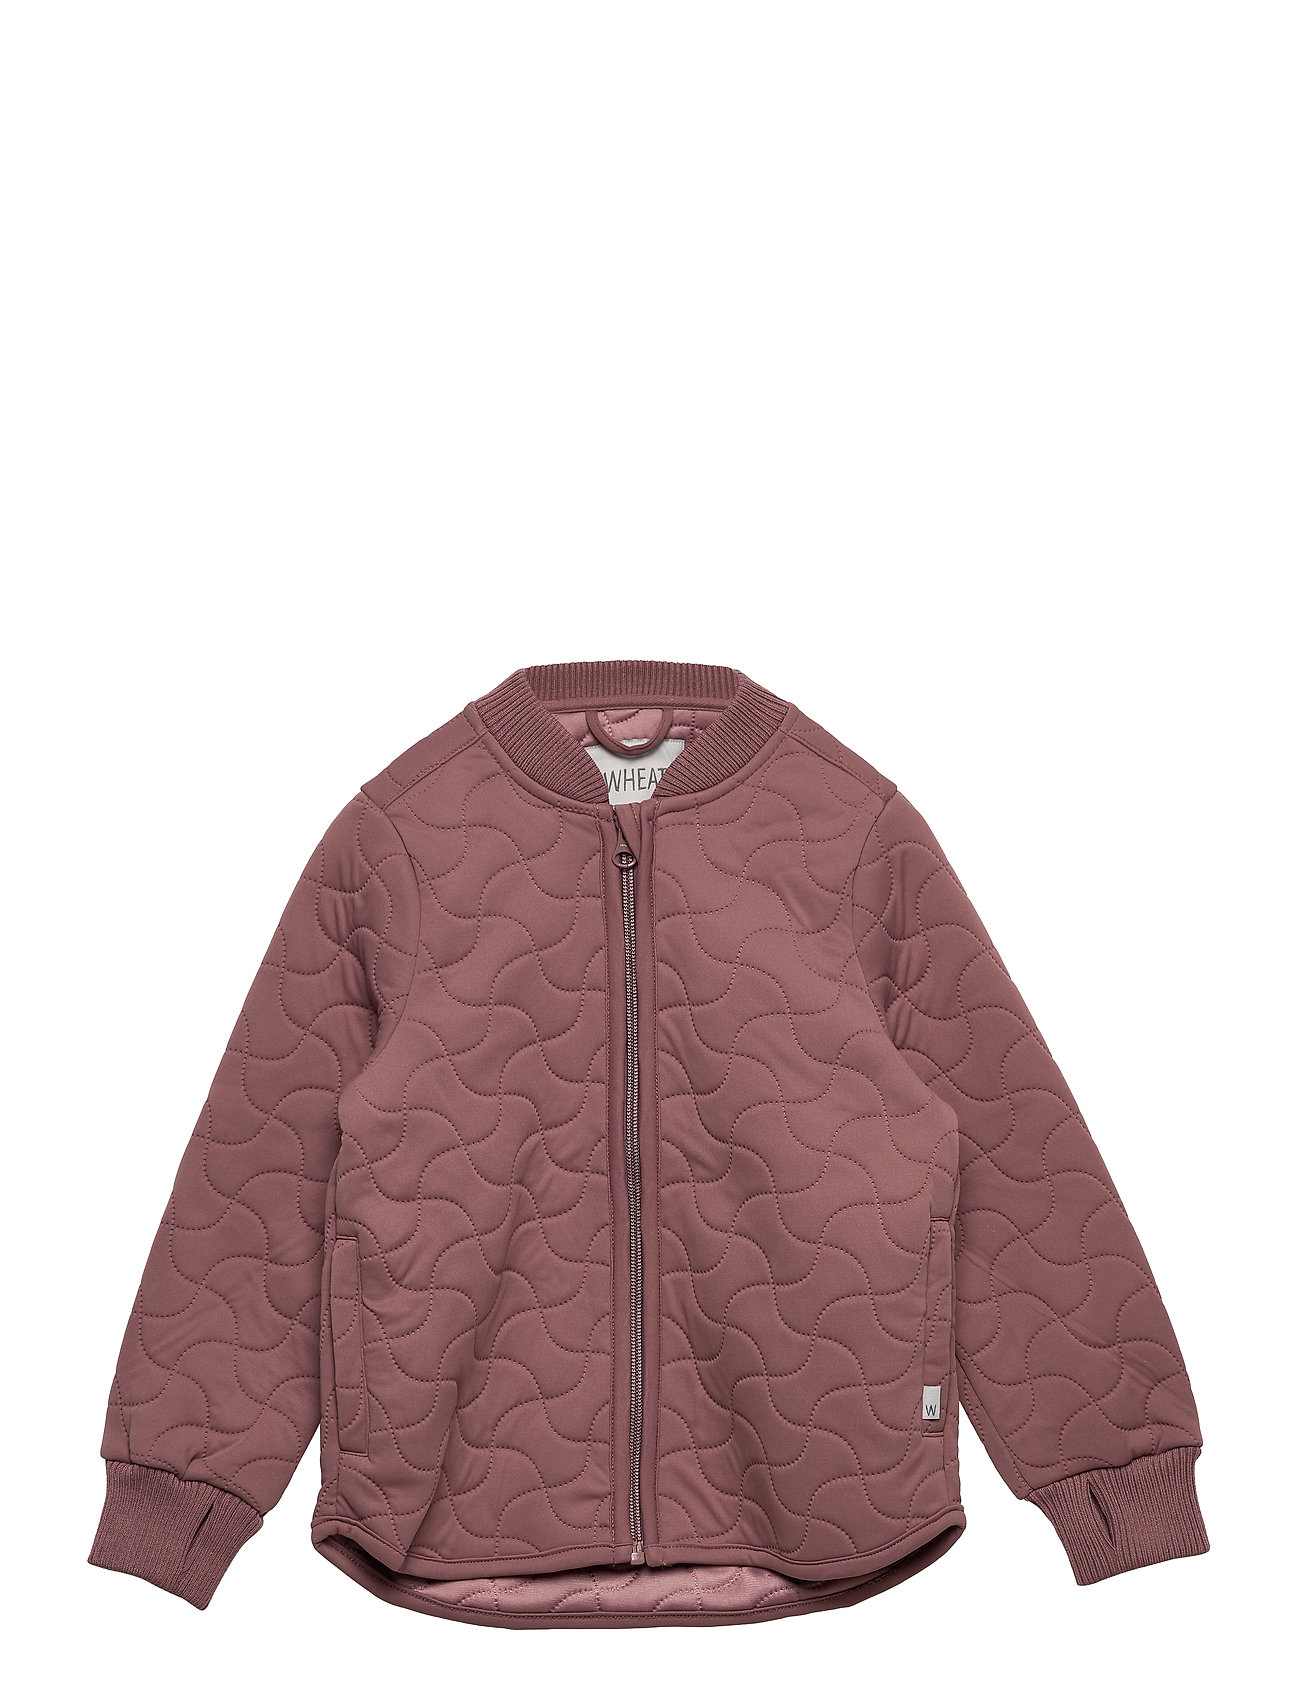 Image of Thermo Jacket Loui Outerwear Thermo Outerwear Thermo Jackets Lyserød Wheat (3447240295)